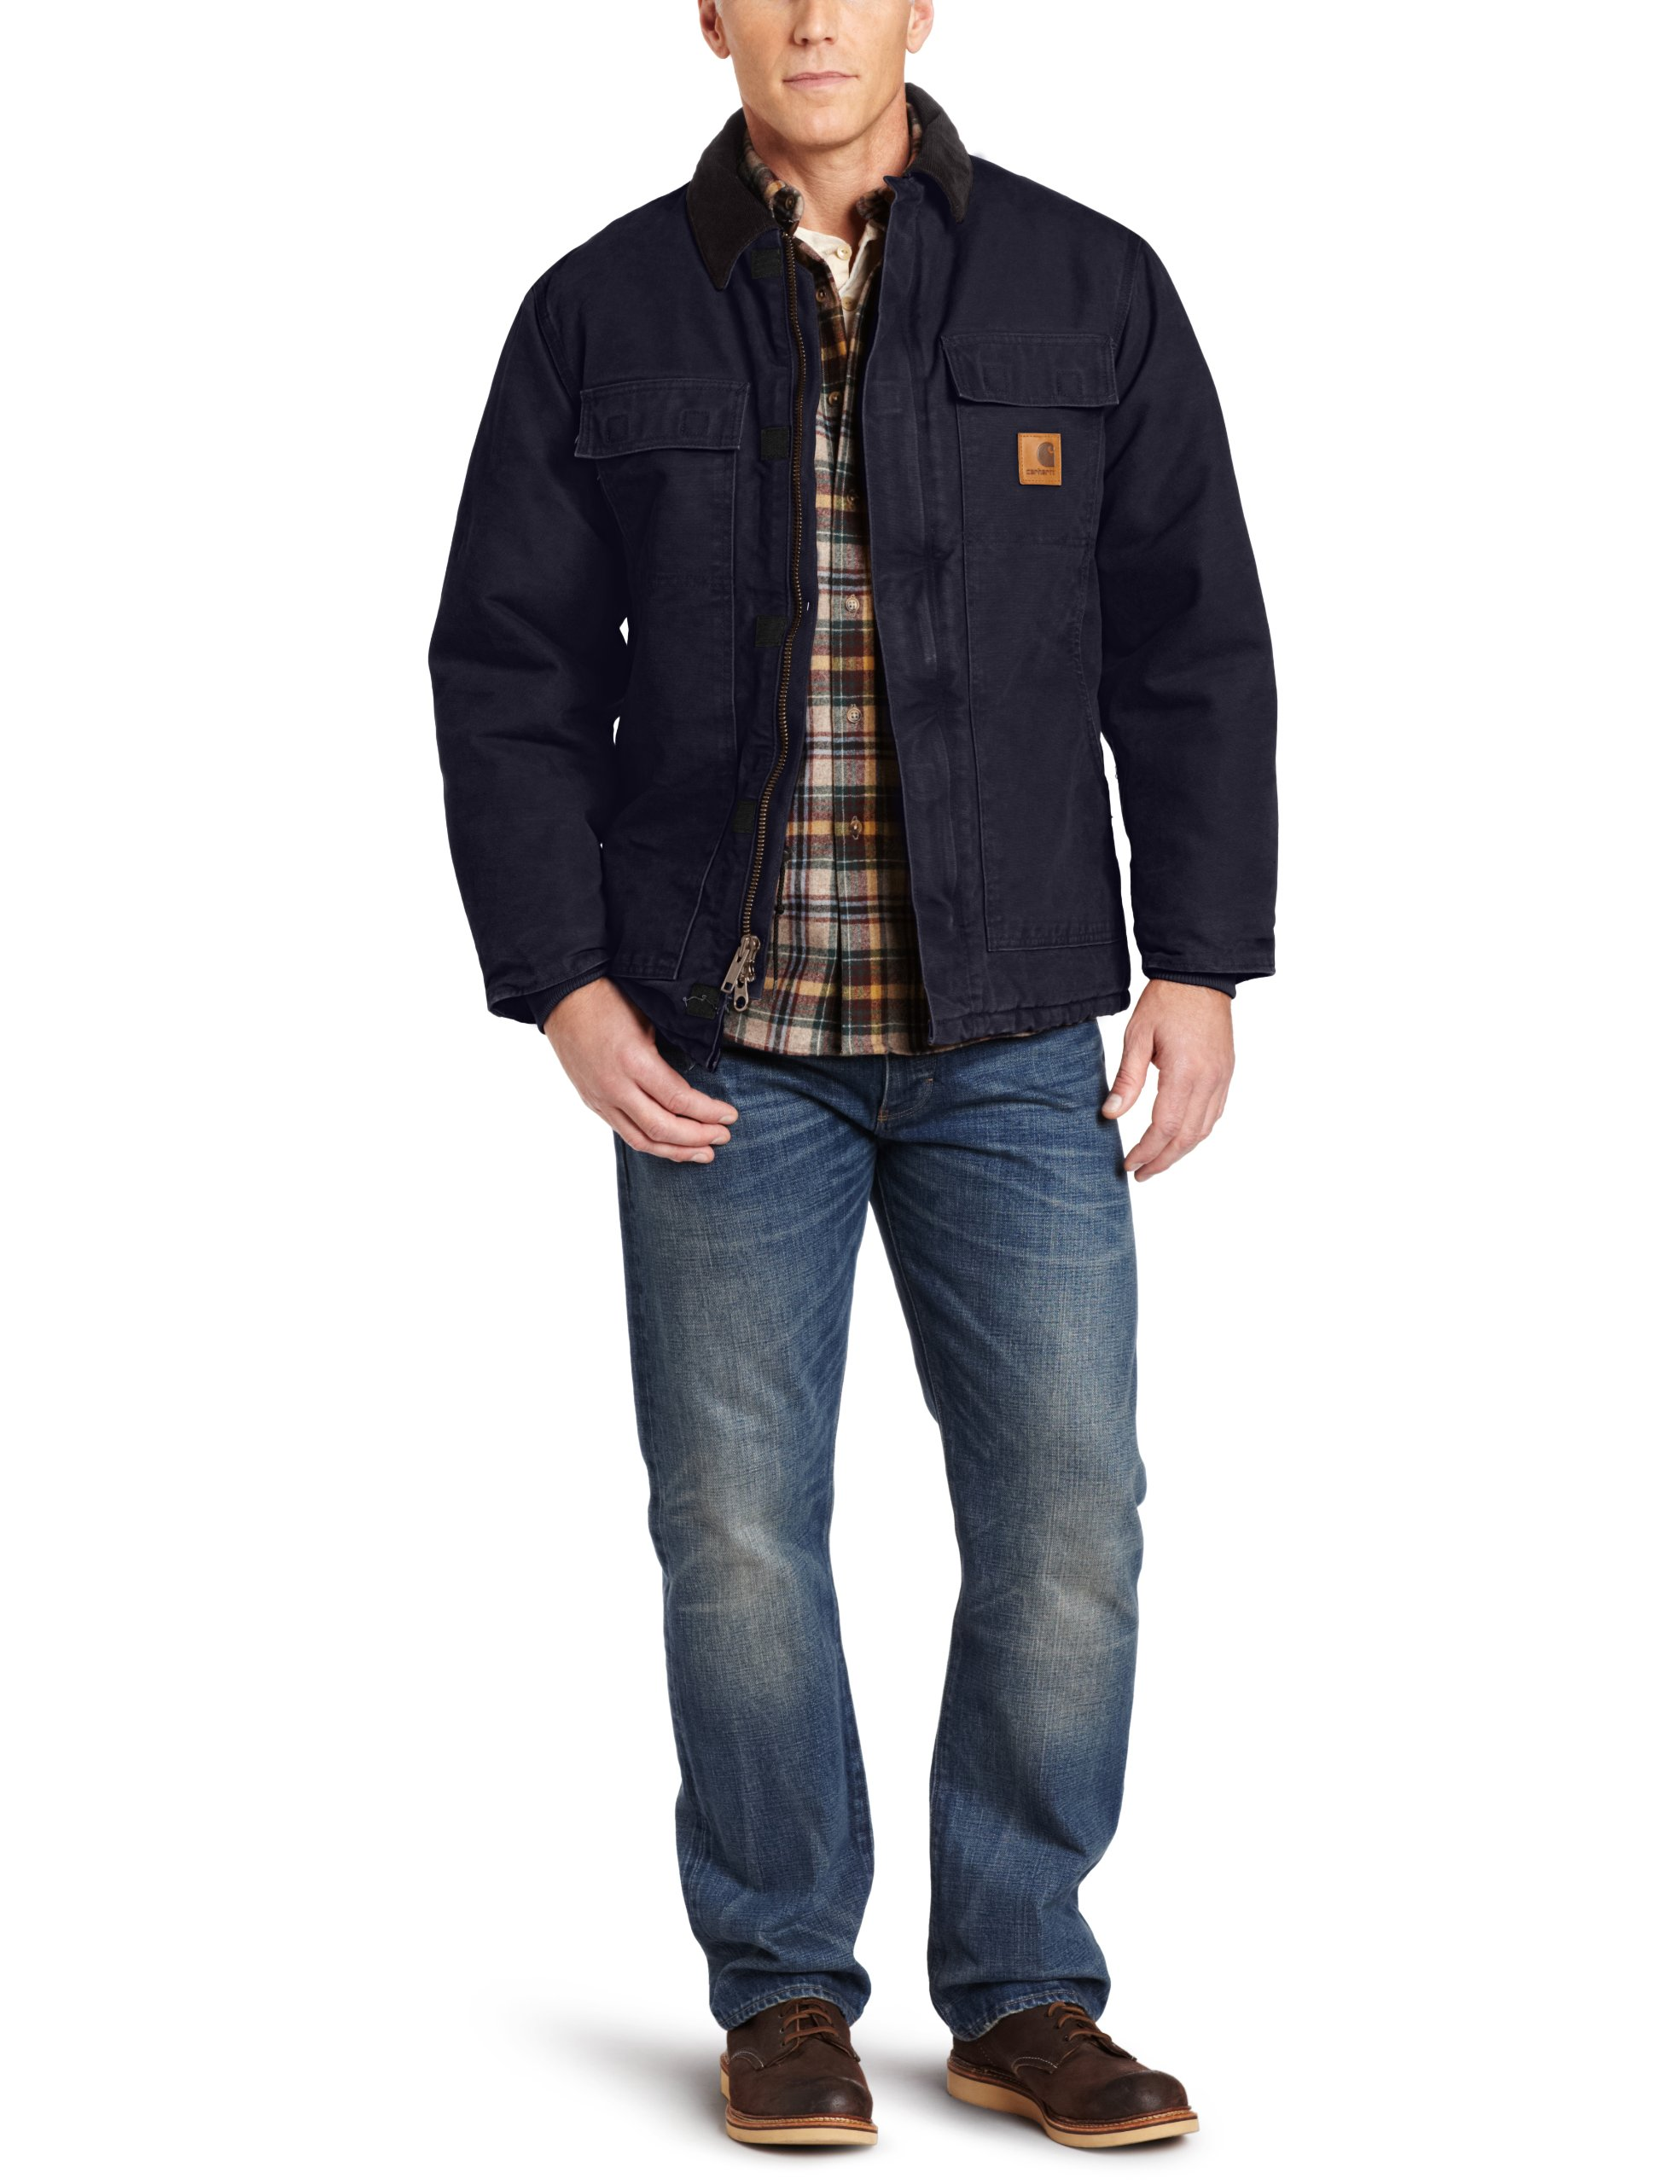 Carhartt Men's Arctic Quilt Lined Sandstone Traditional Coat C26,Midnight,X-Large by Carhartt